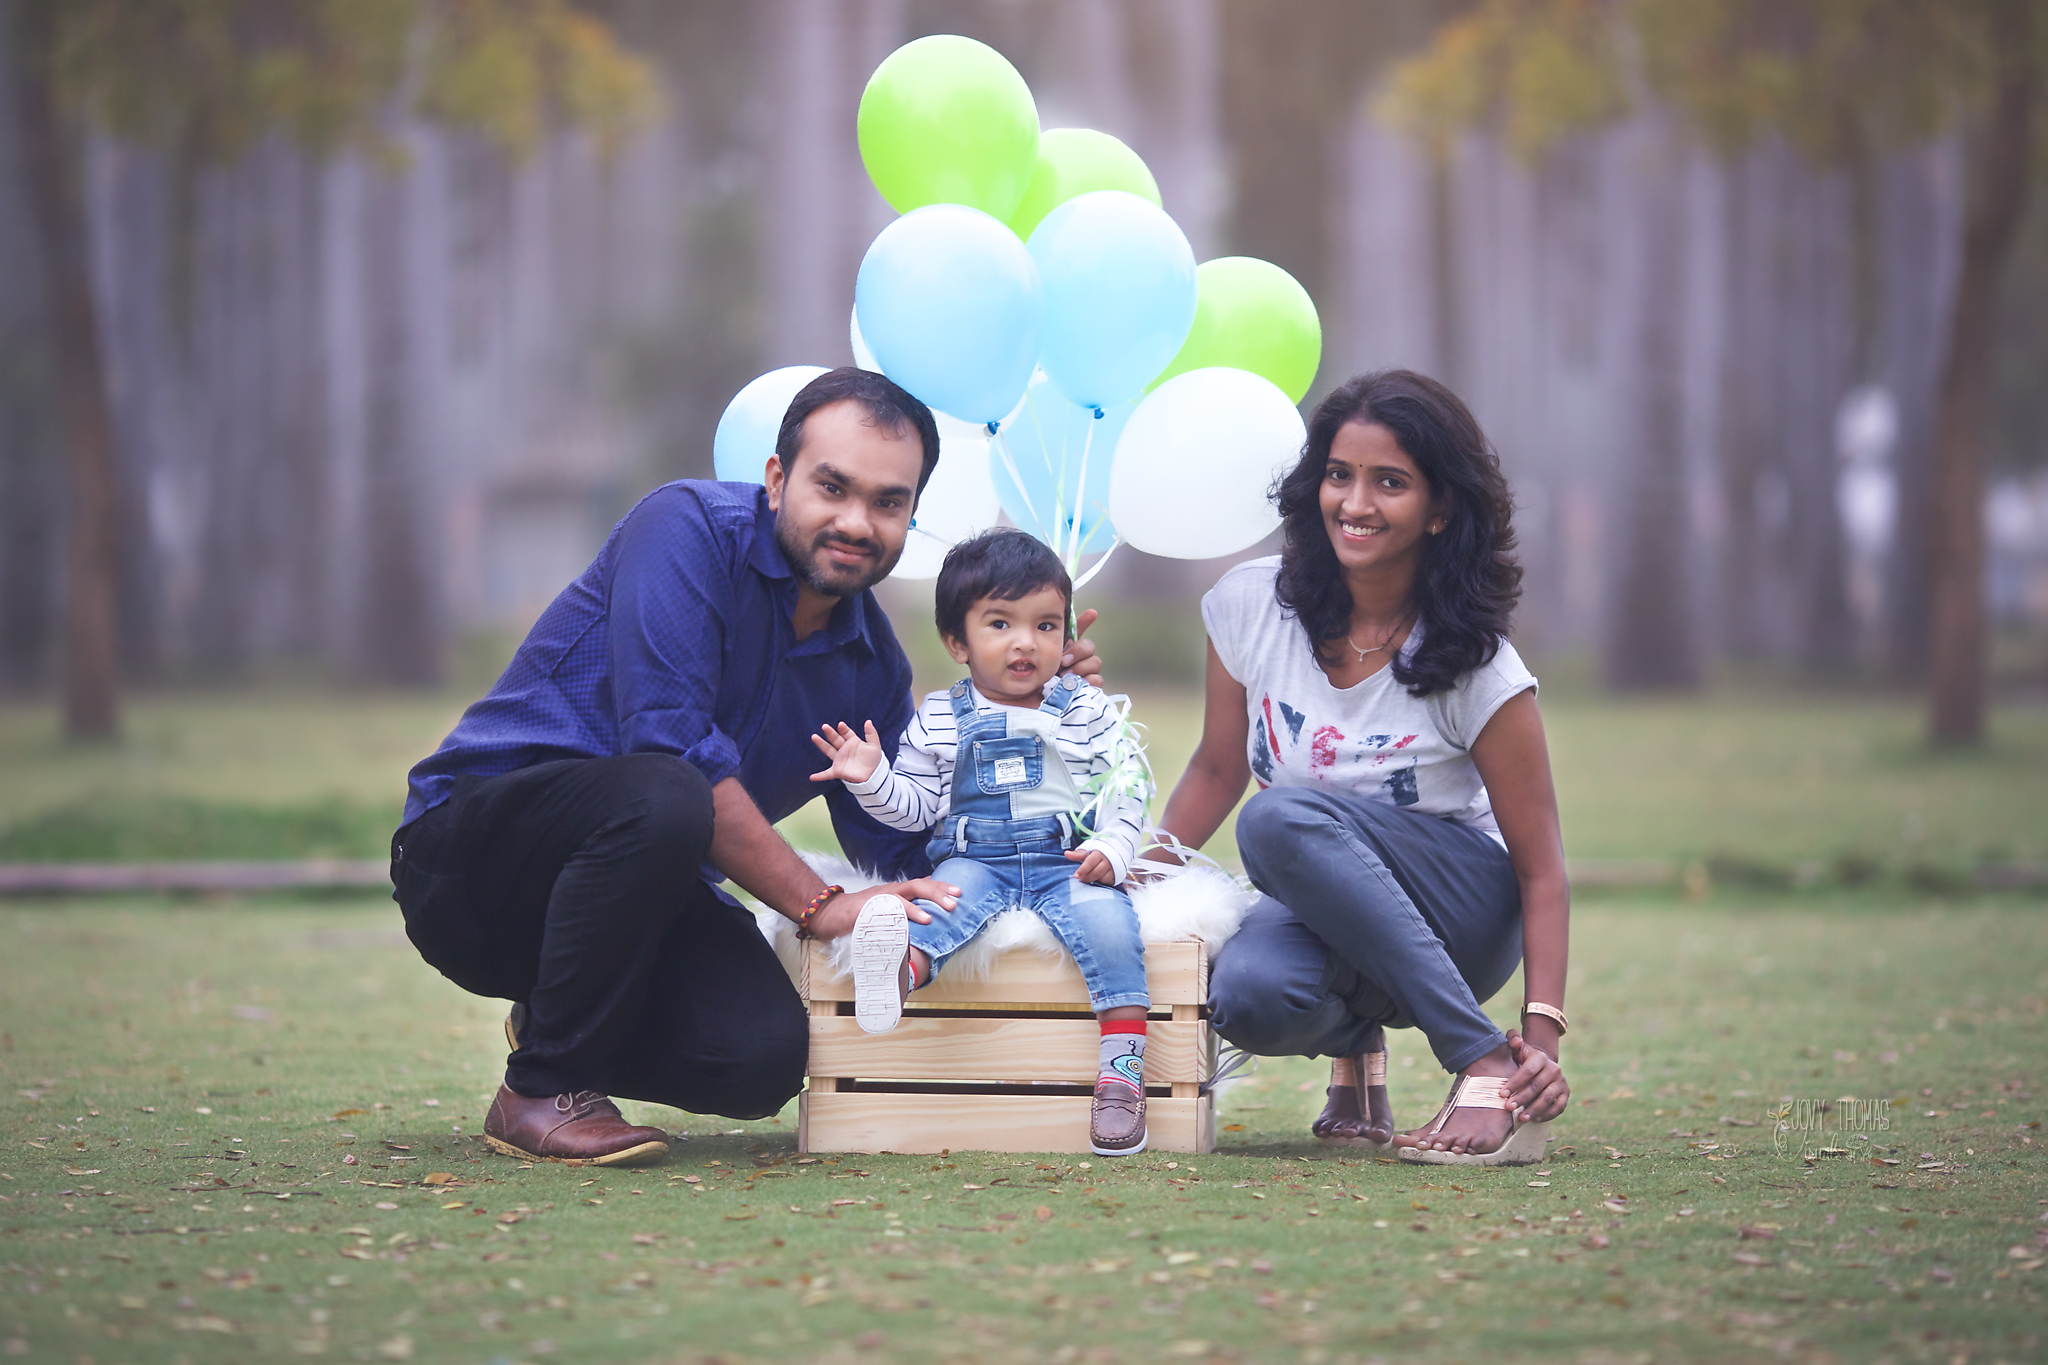 Family photo session Hyderadbad